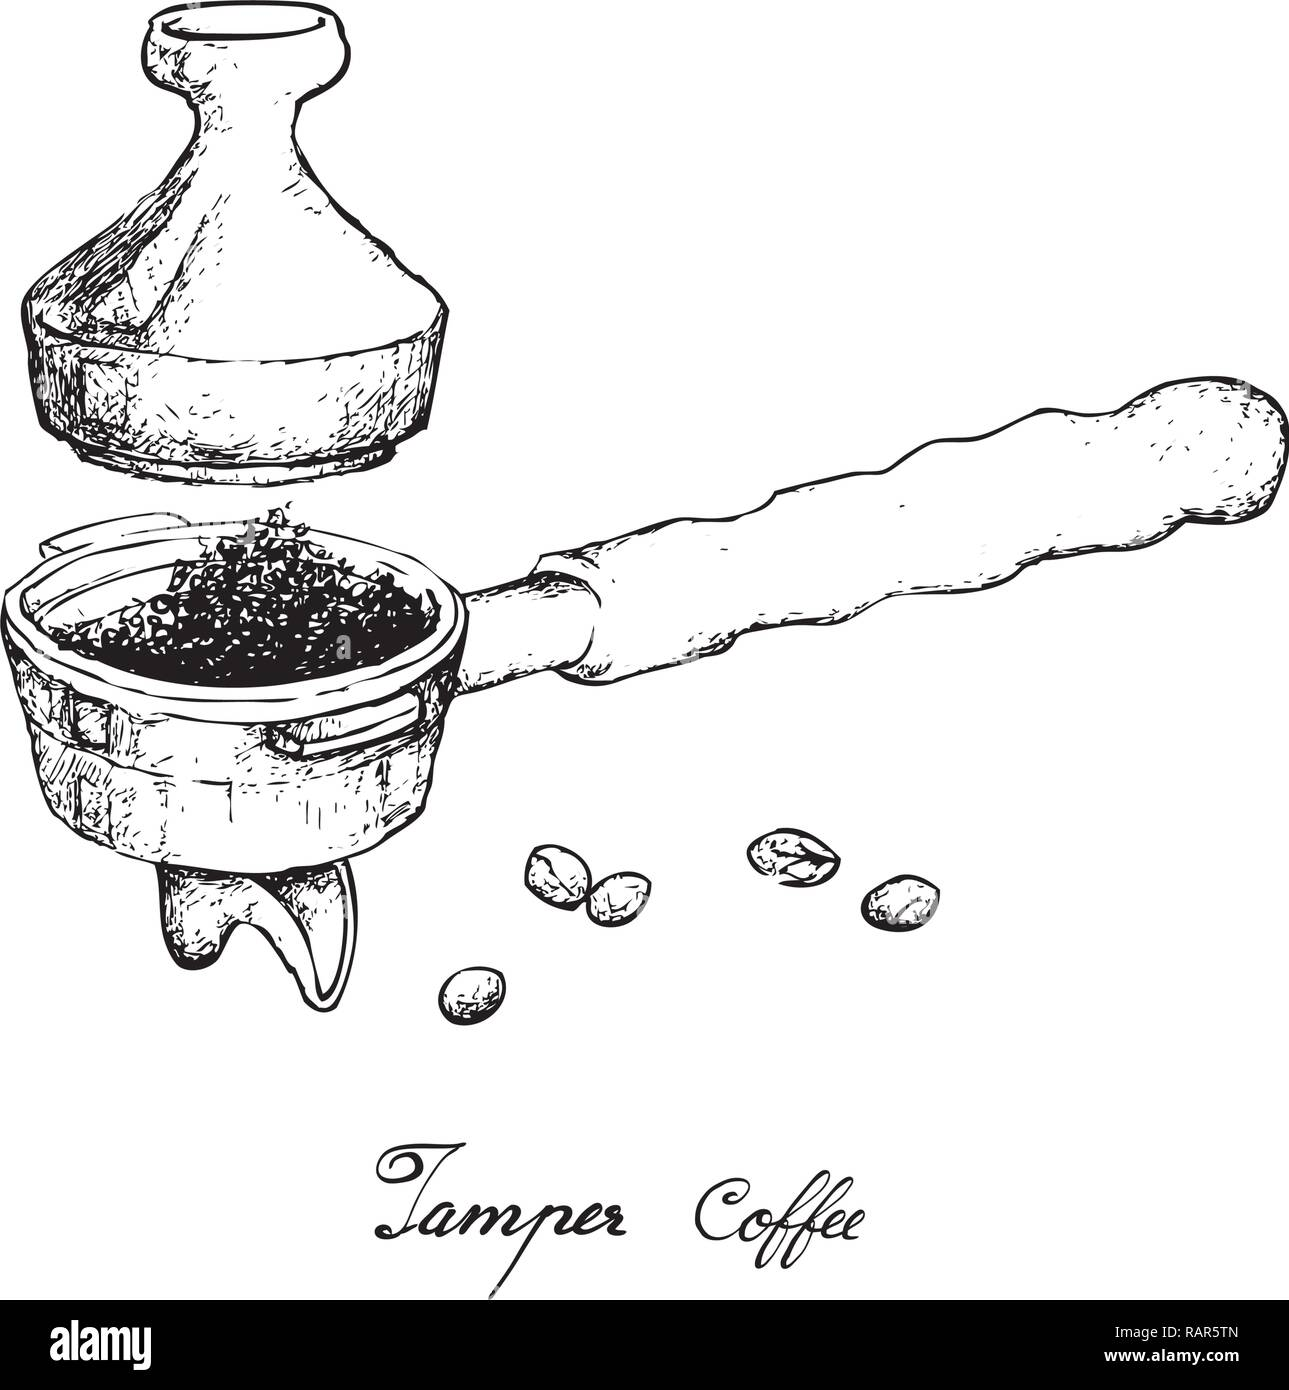 coffee time illustration hand drawn sketch of roasted coffee beans in metal portafilter or filter holder with tamper of espresso machine stock vector image art alamy https www alamy com coffee time illustration hand drawn sketch of roasted coffee beans in metal portafilter or filter holder with tamper of espresso machine image230390853 html